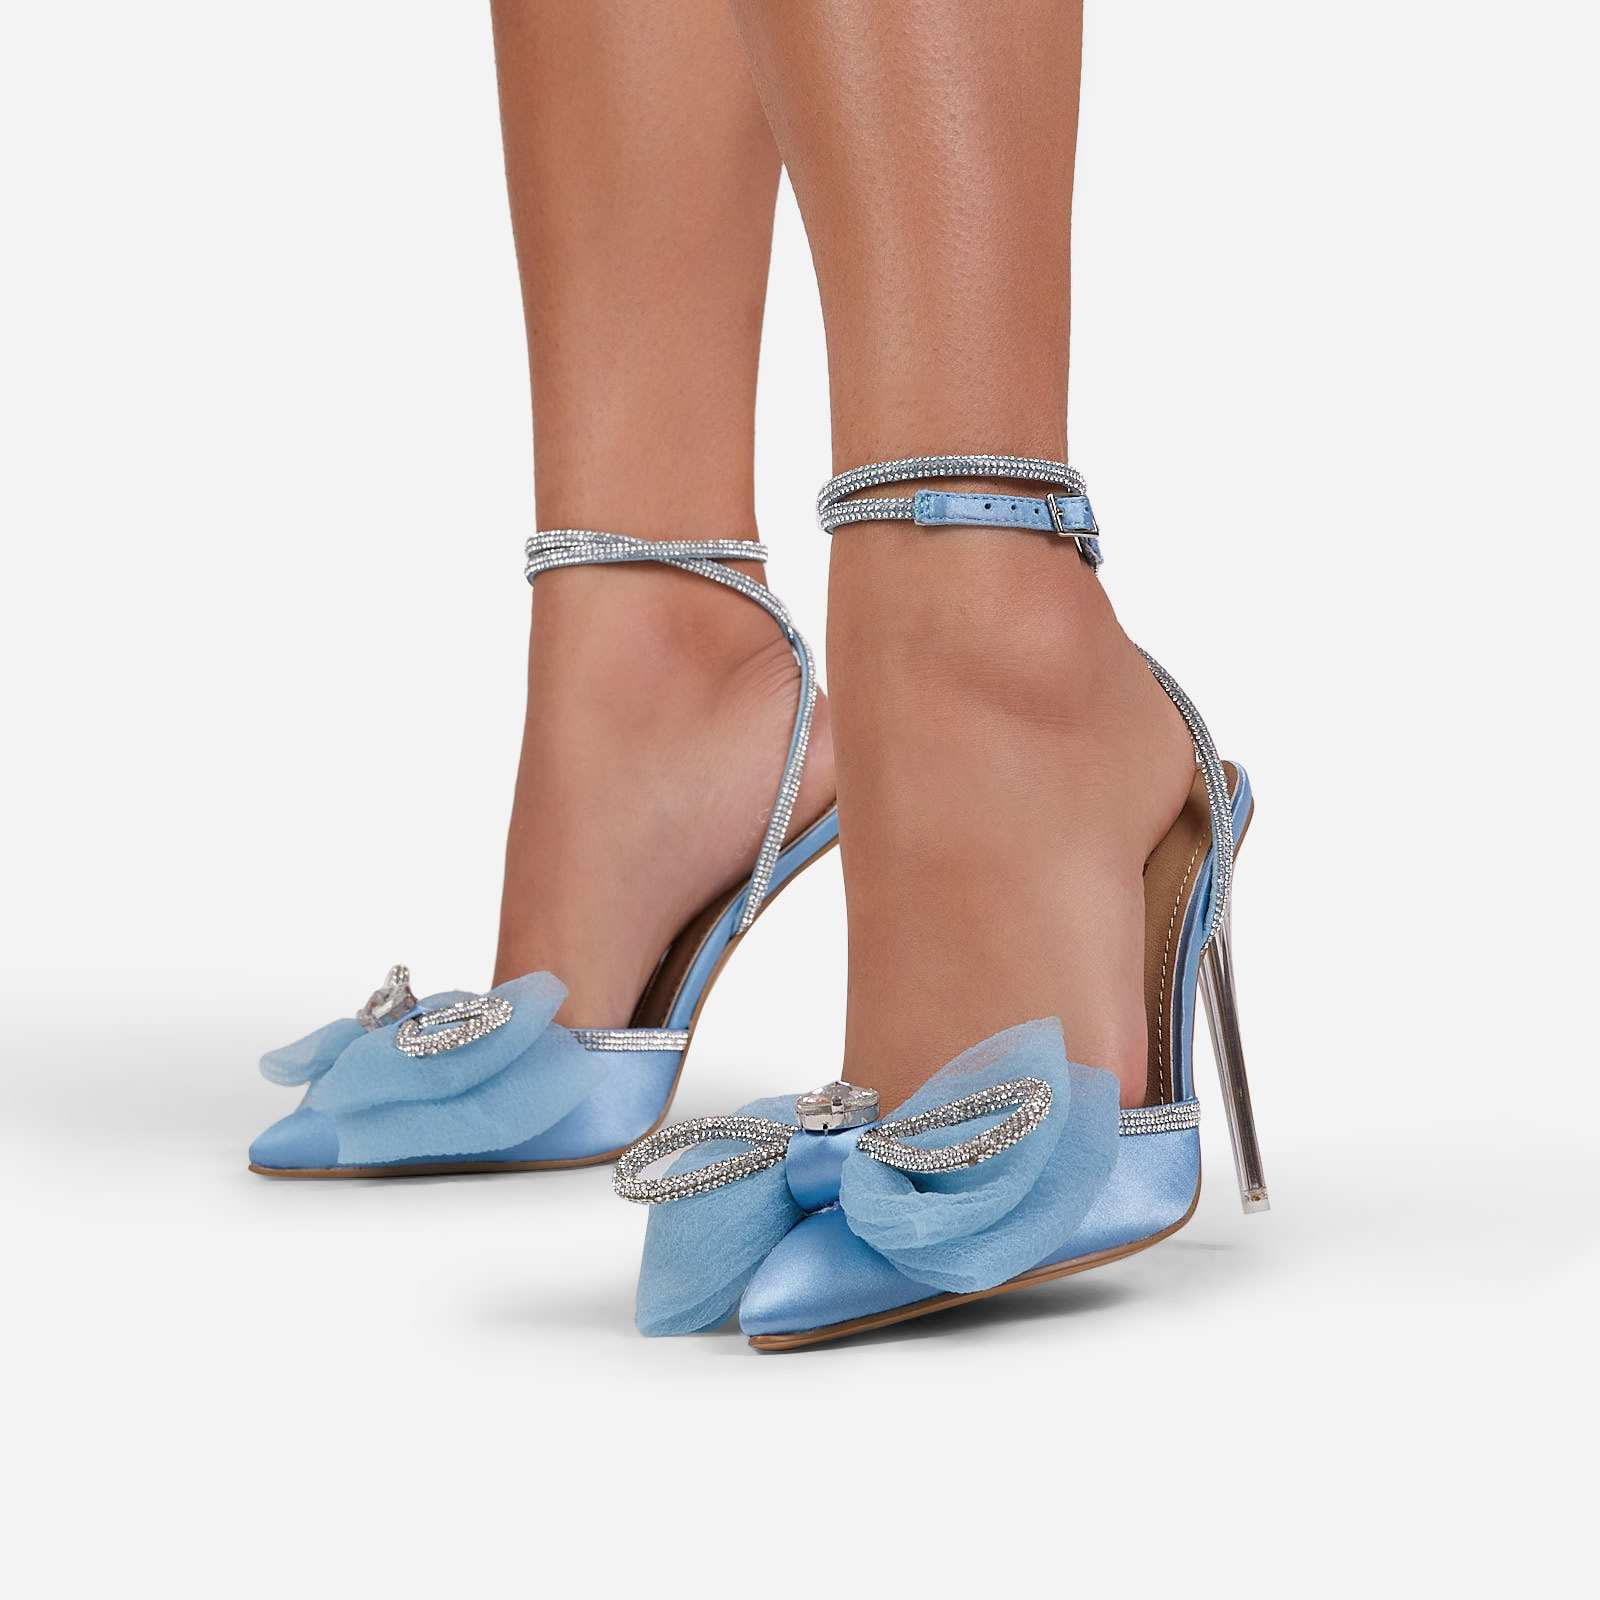 Chriselle Bow Detail Diamante Lace Up Clear Perspex Heel In Blue Satin